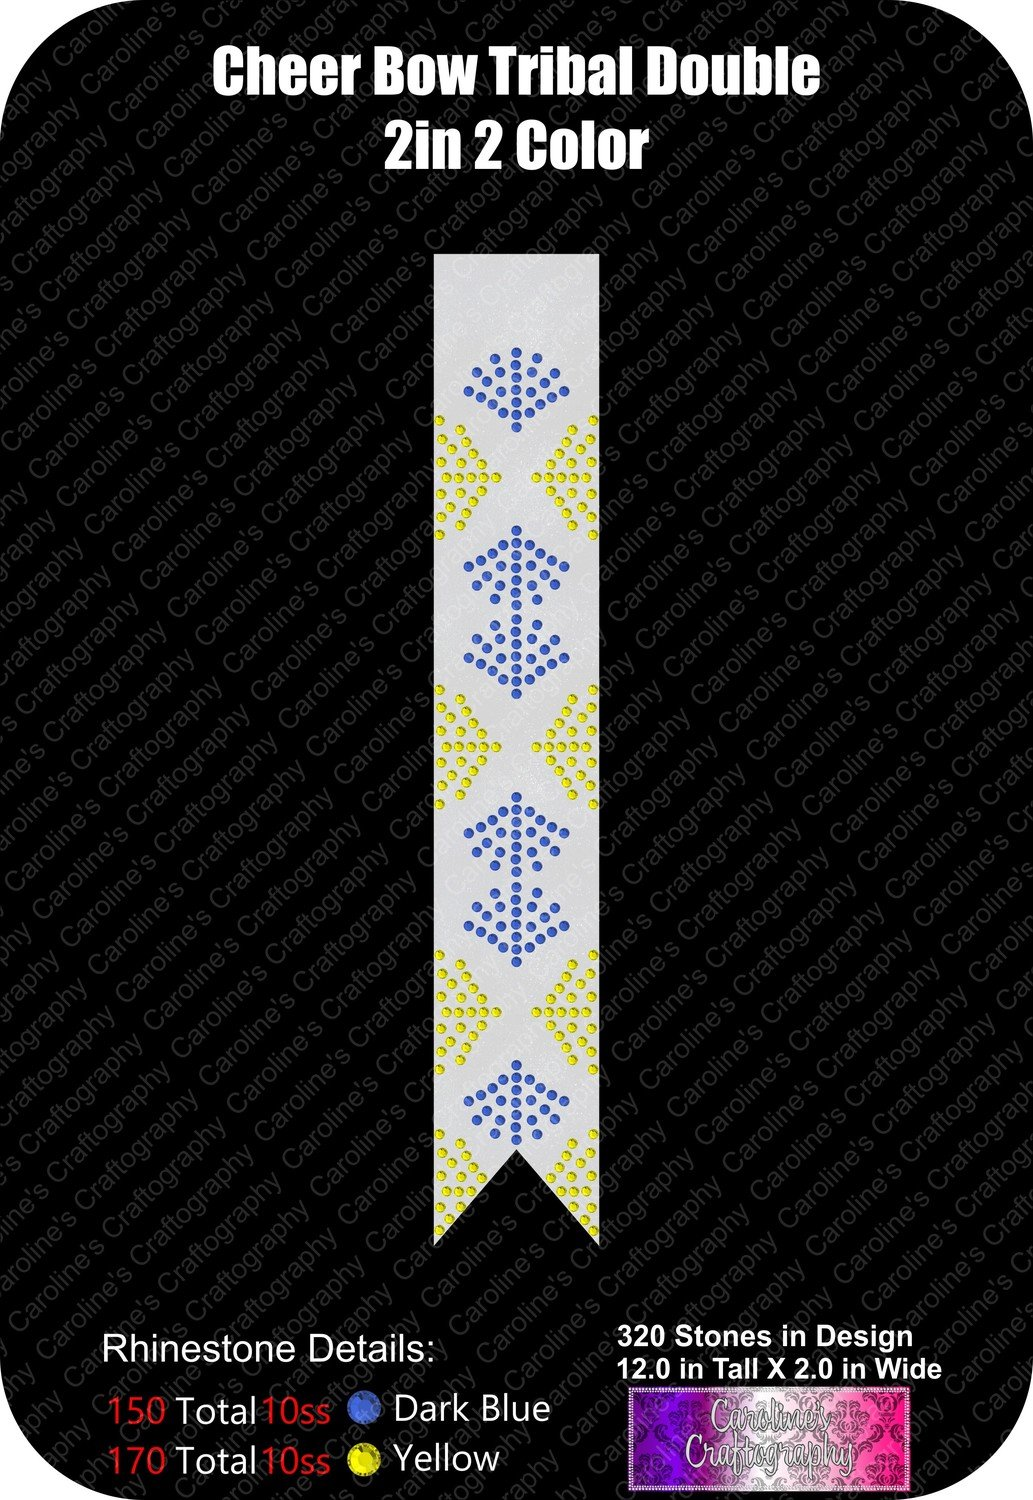 Tribal Double 2 Color 2in Cheer Bow Stone